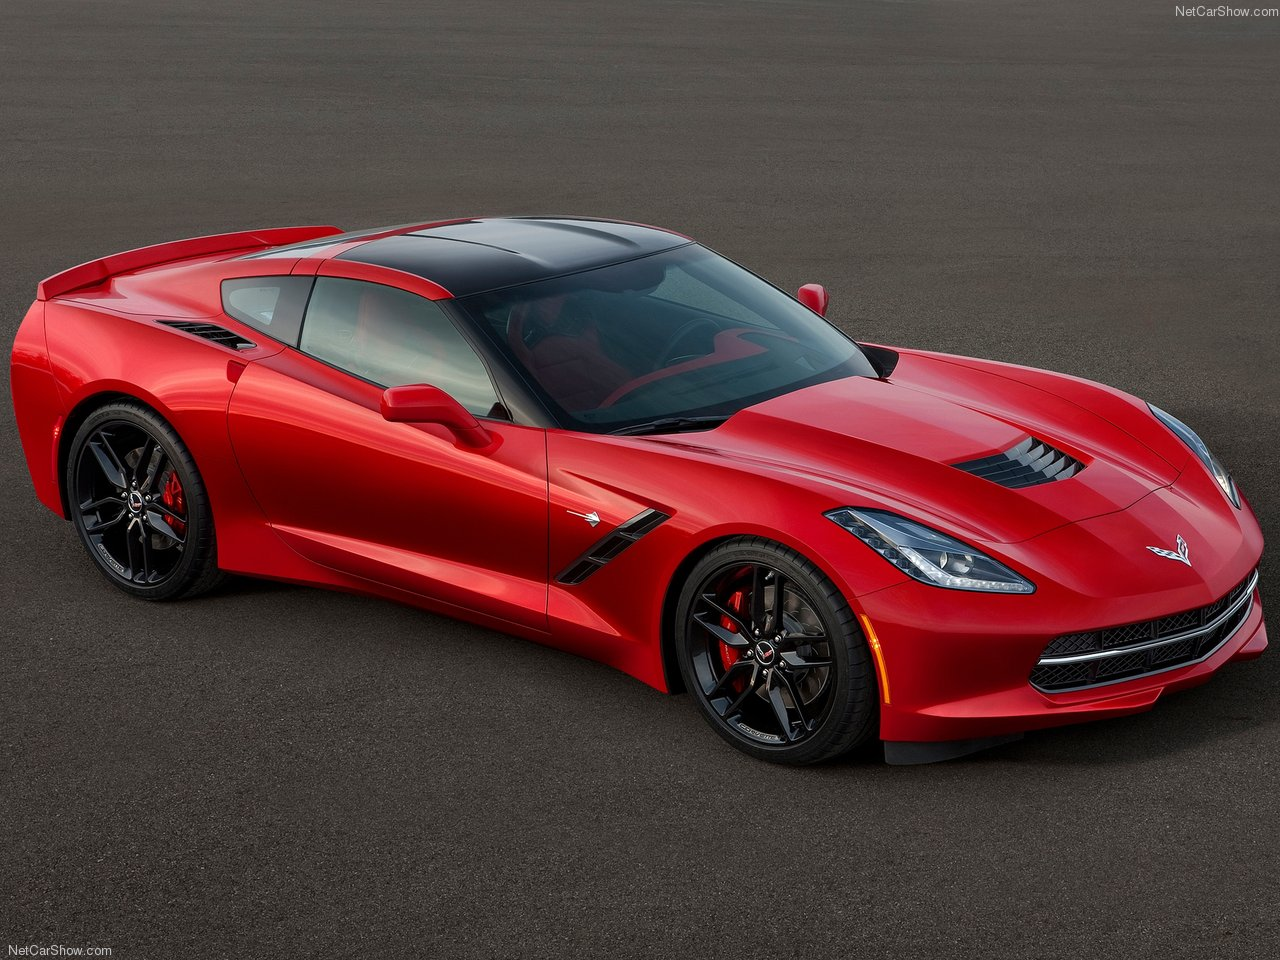 2014 Chevrolet Corvette C7 Stingray wallpaper 1280960 For Desktop 1280x960